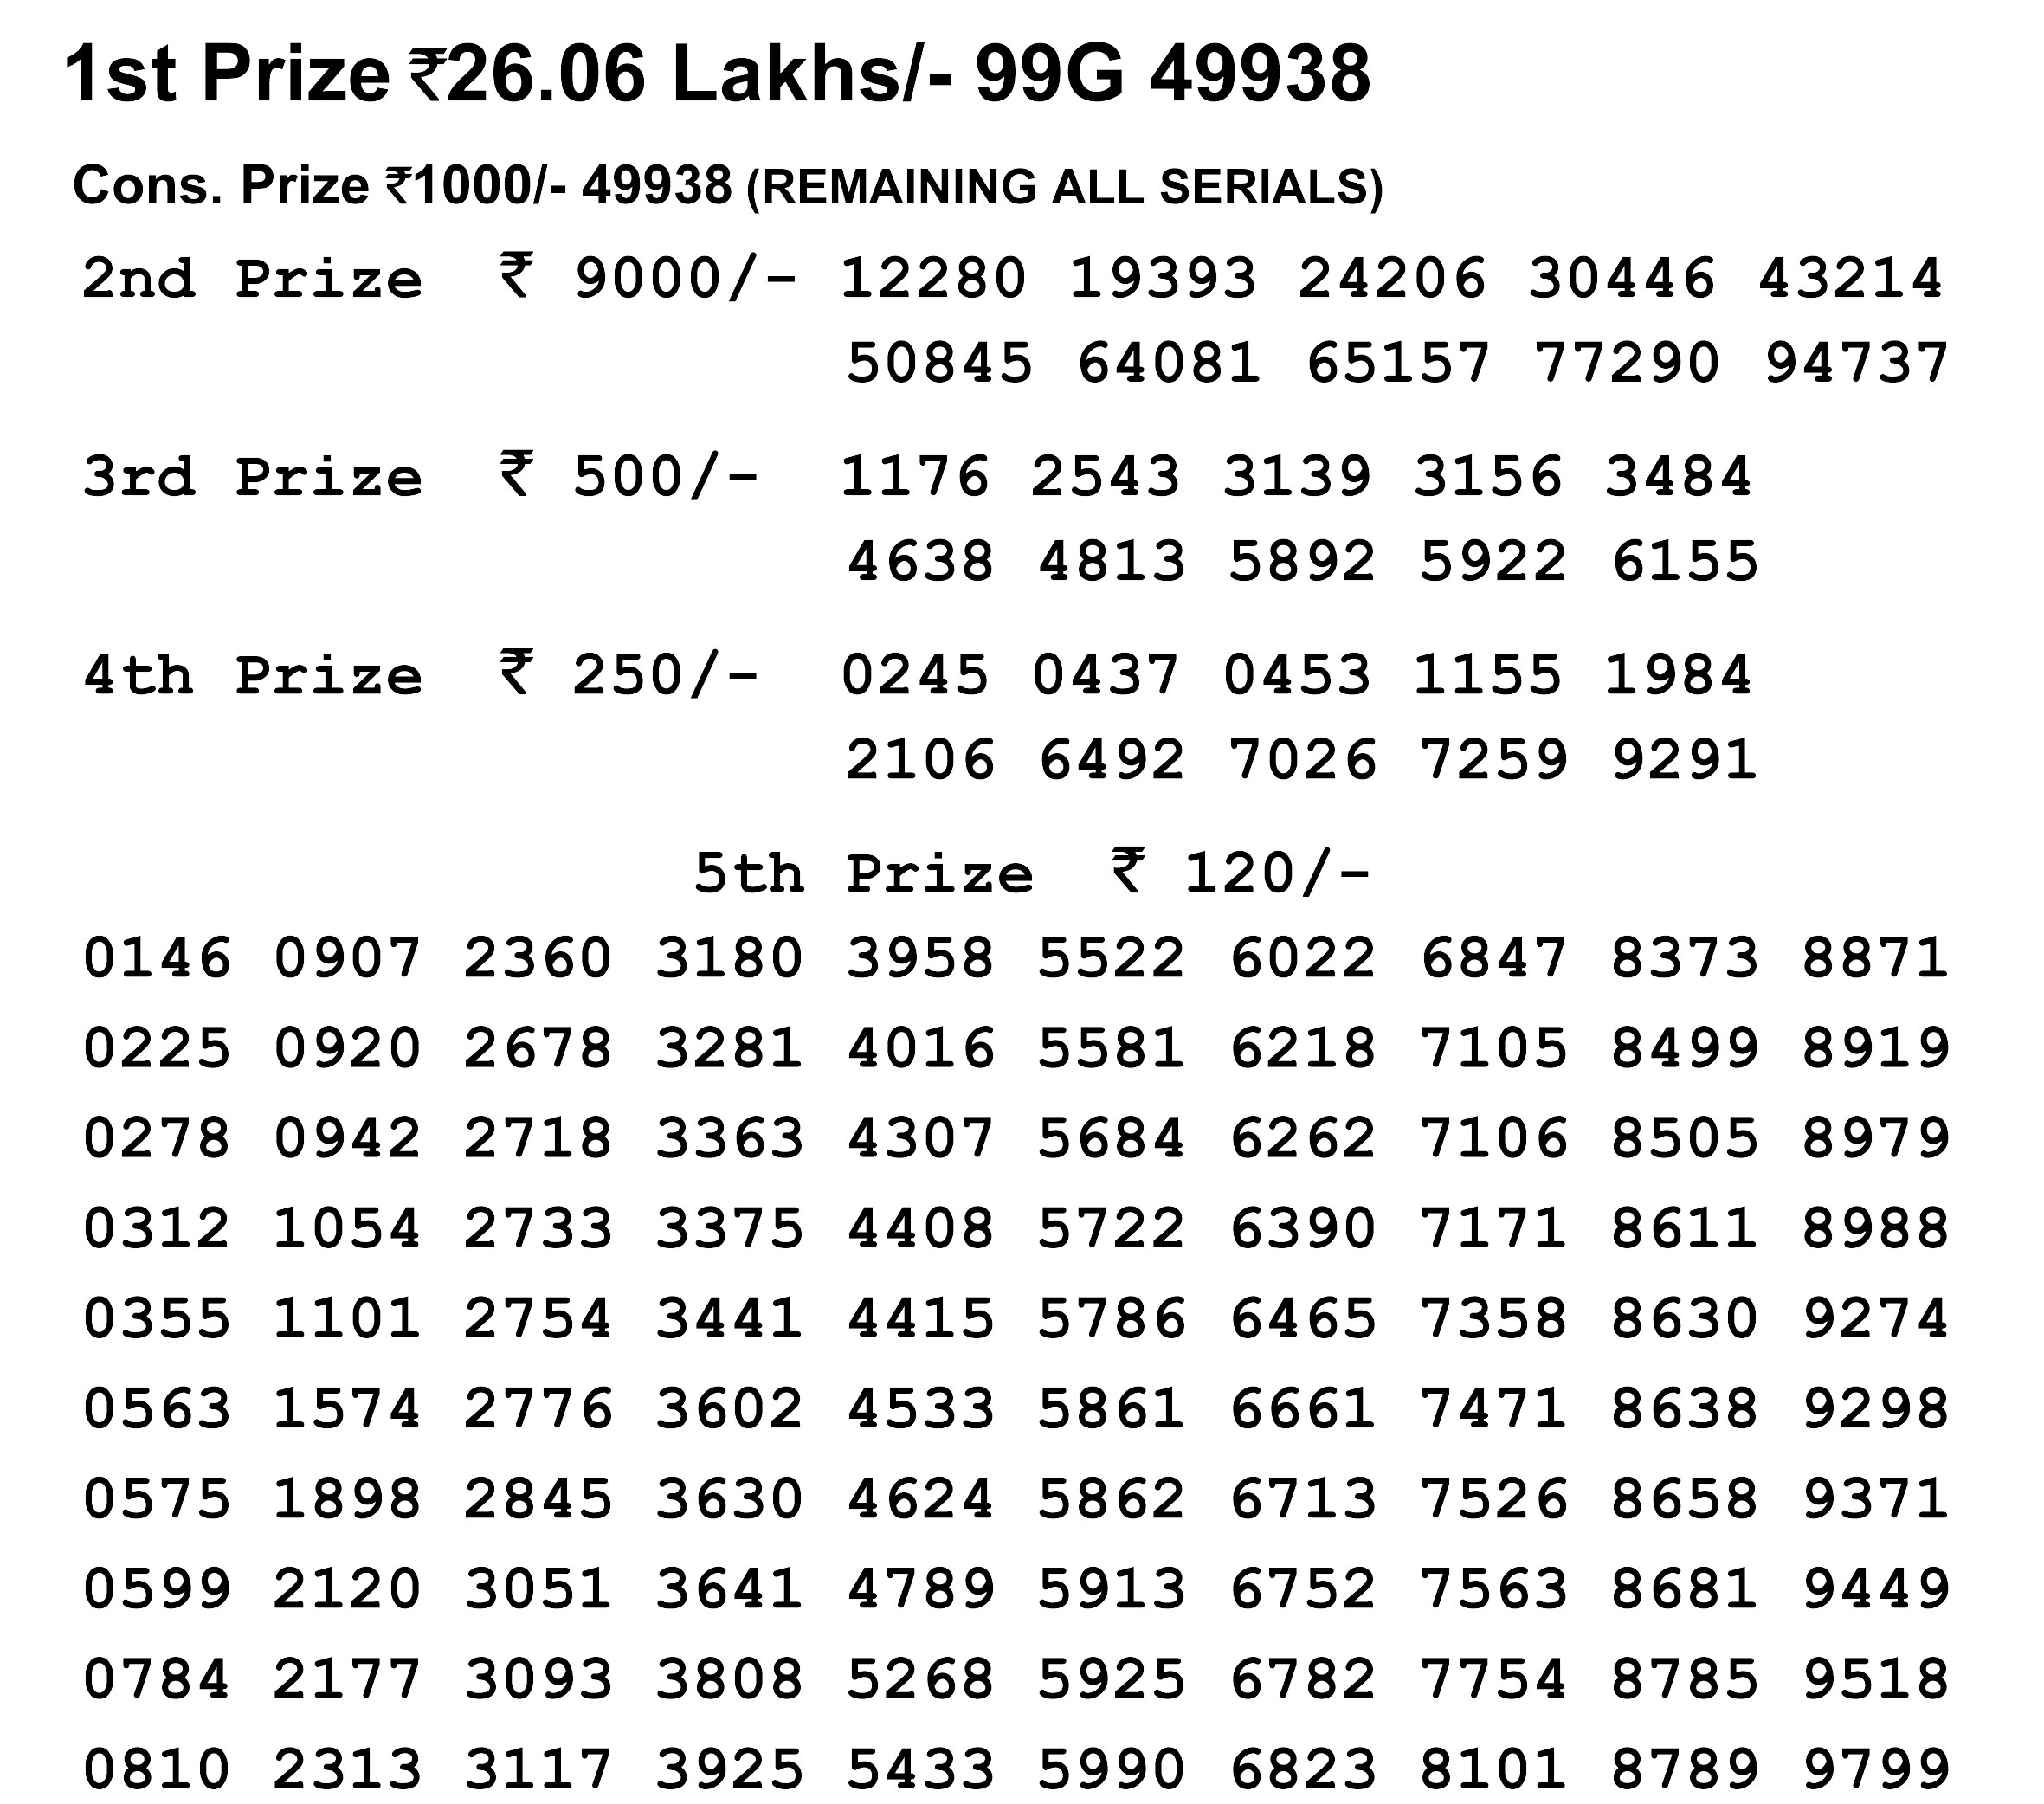 Nagaland Lotteries today results LIVE now, winning number 99G 49938